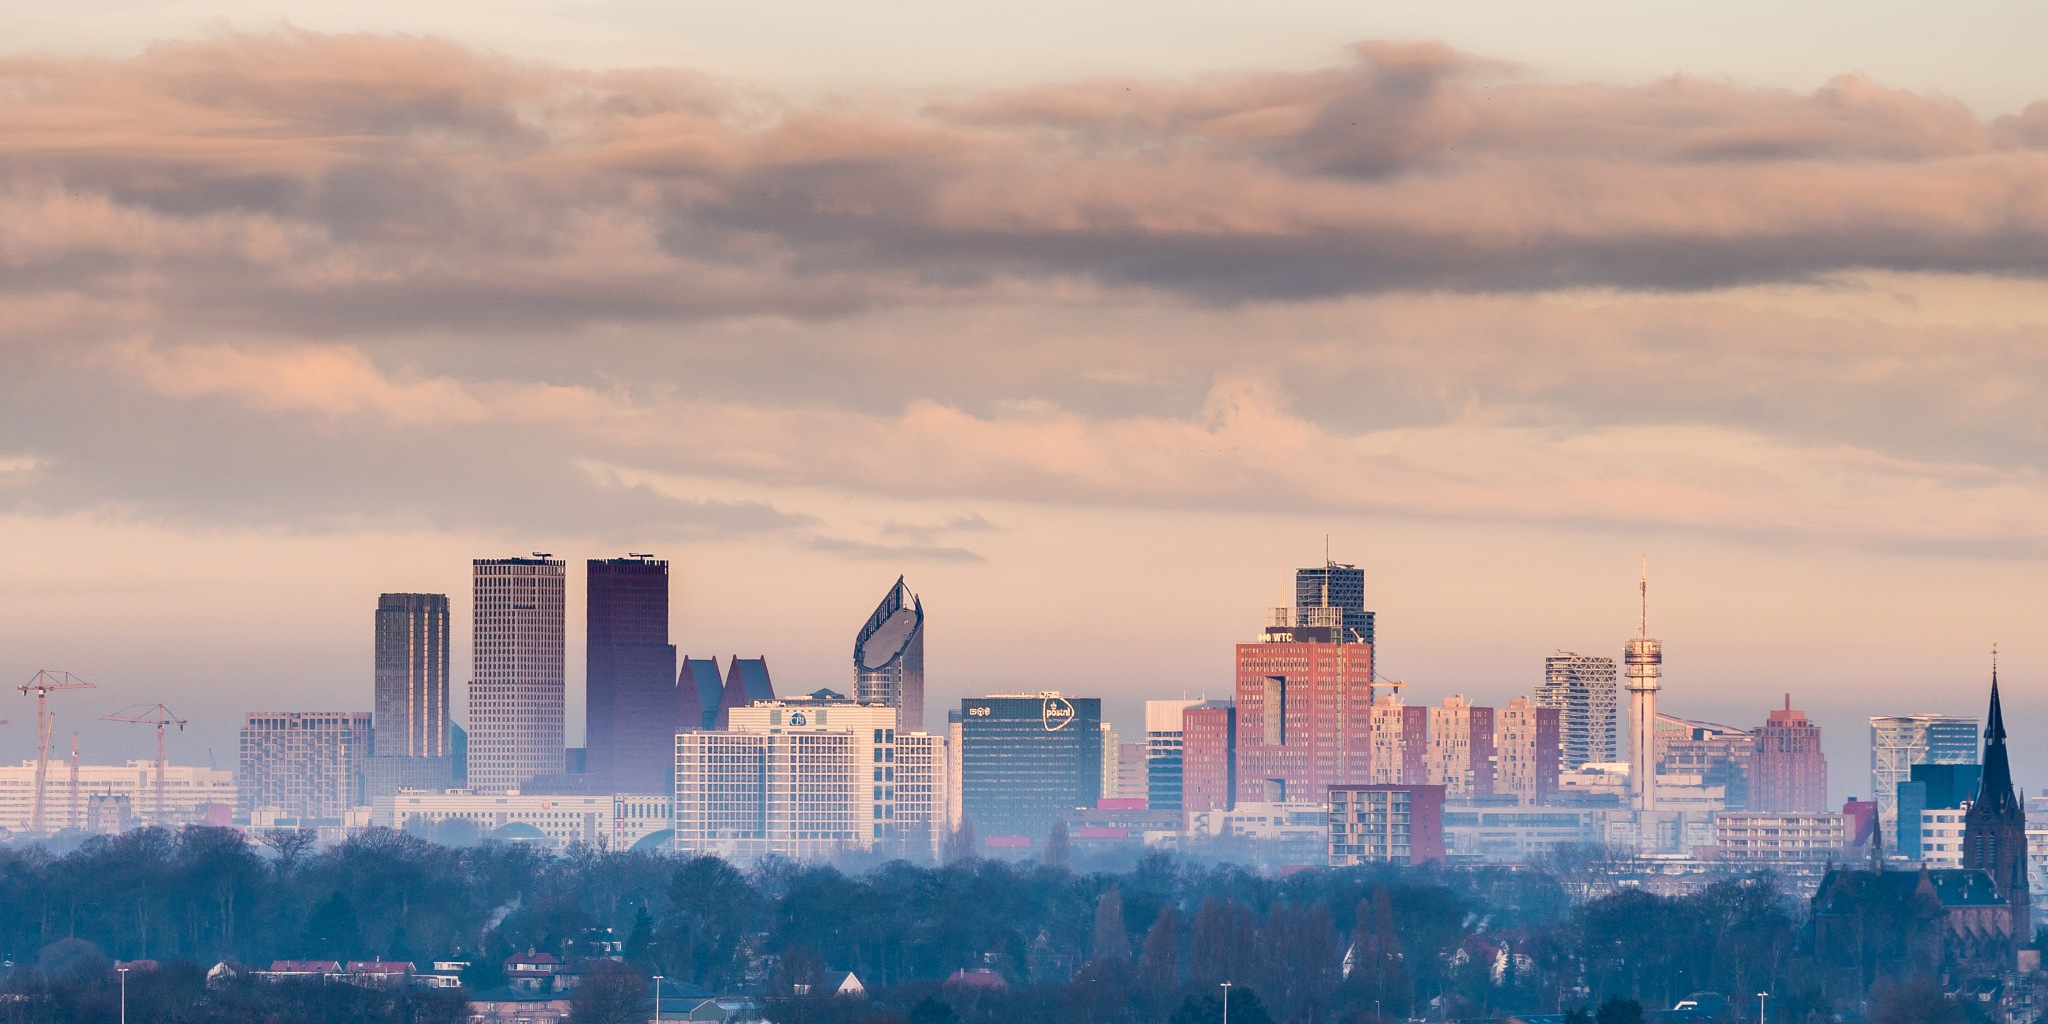 The Hague is waking up by Jos van der Zon